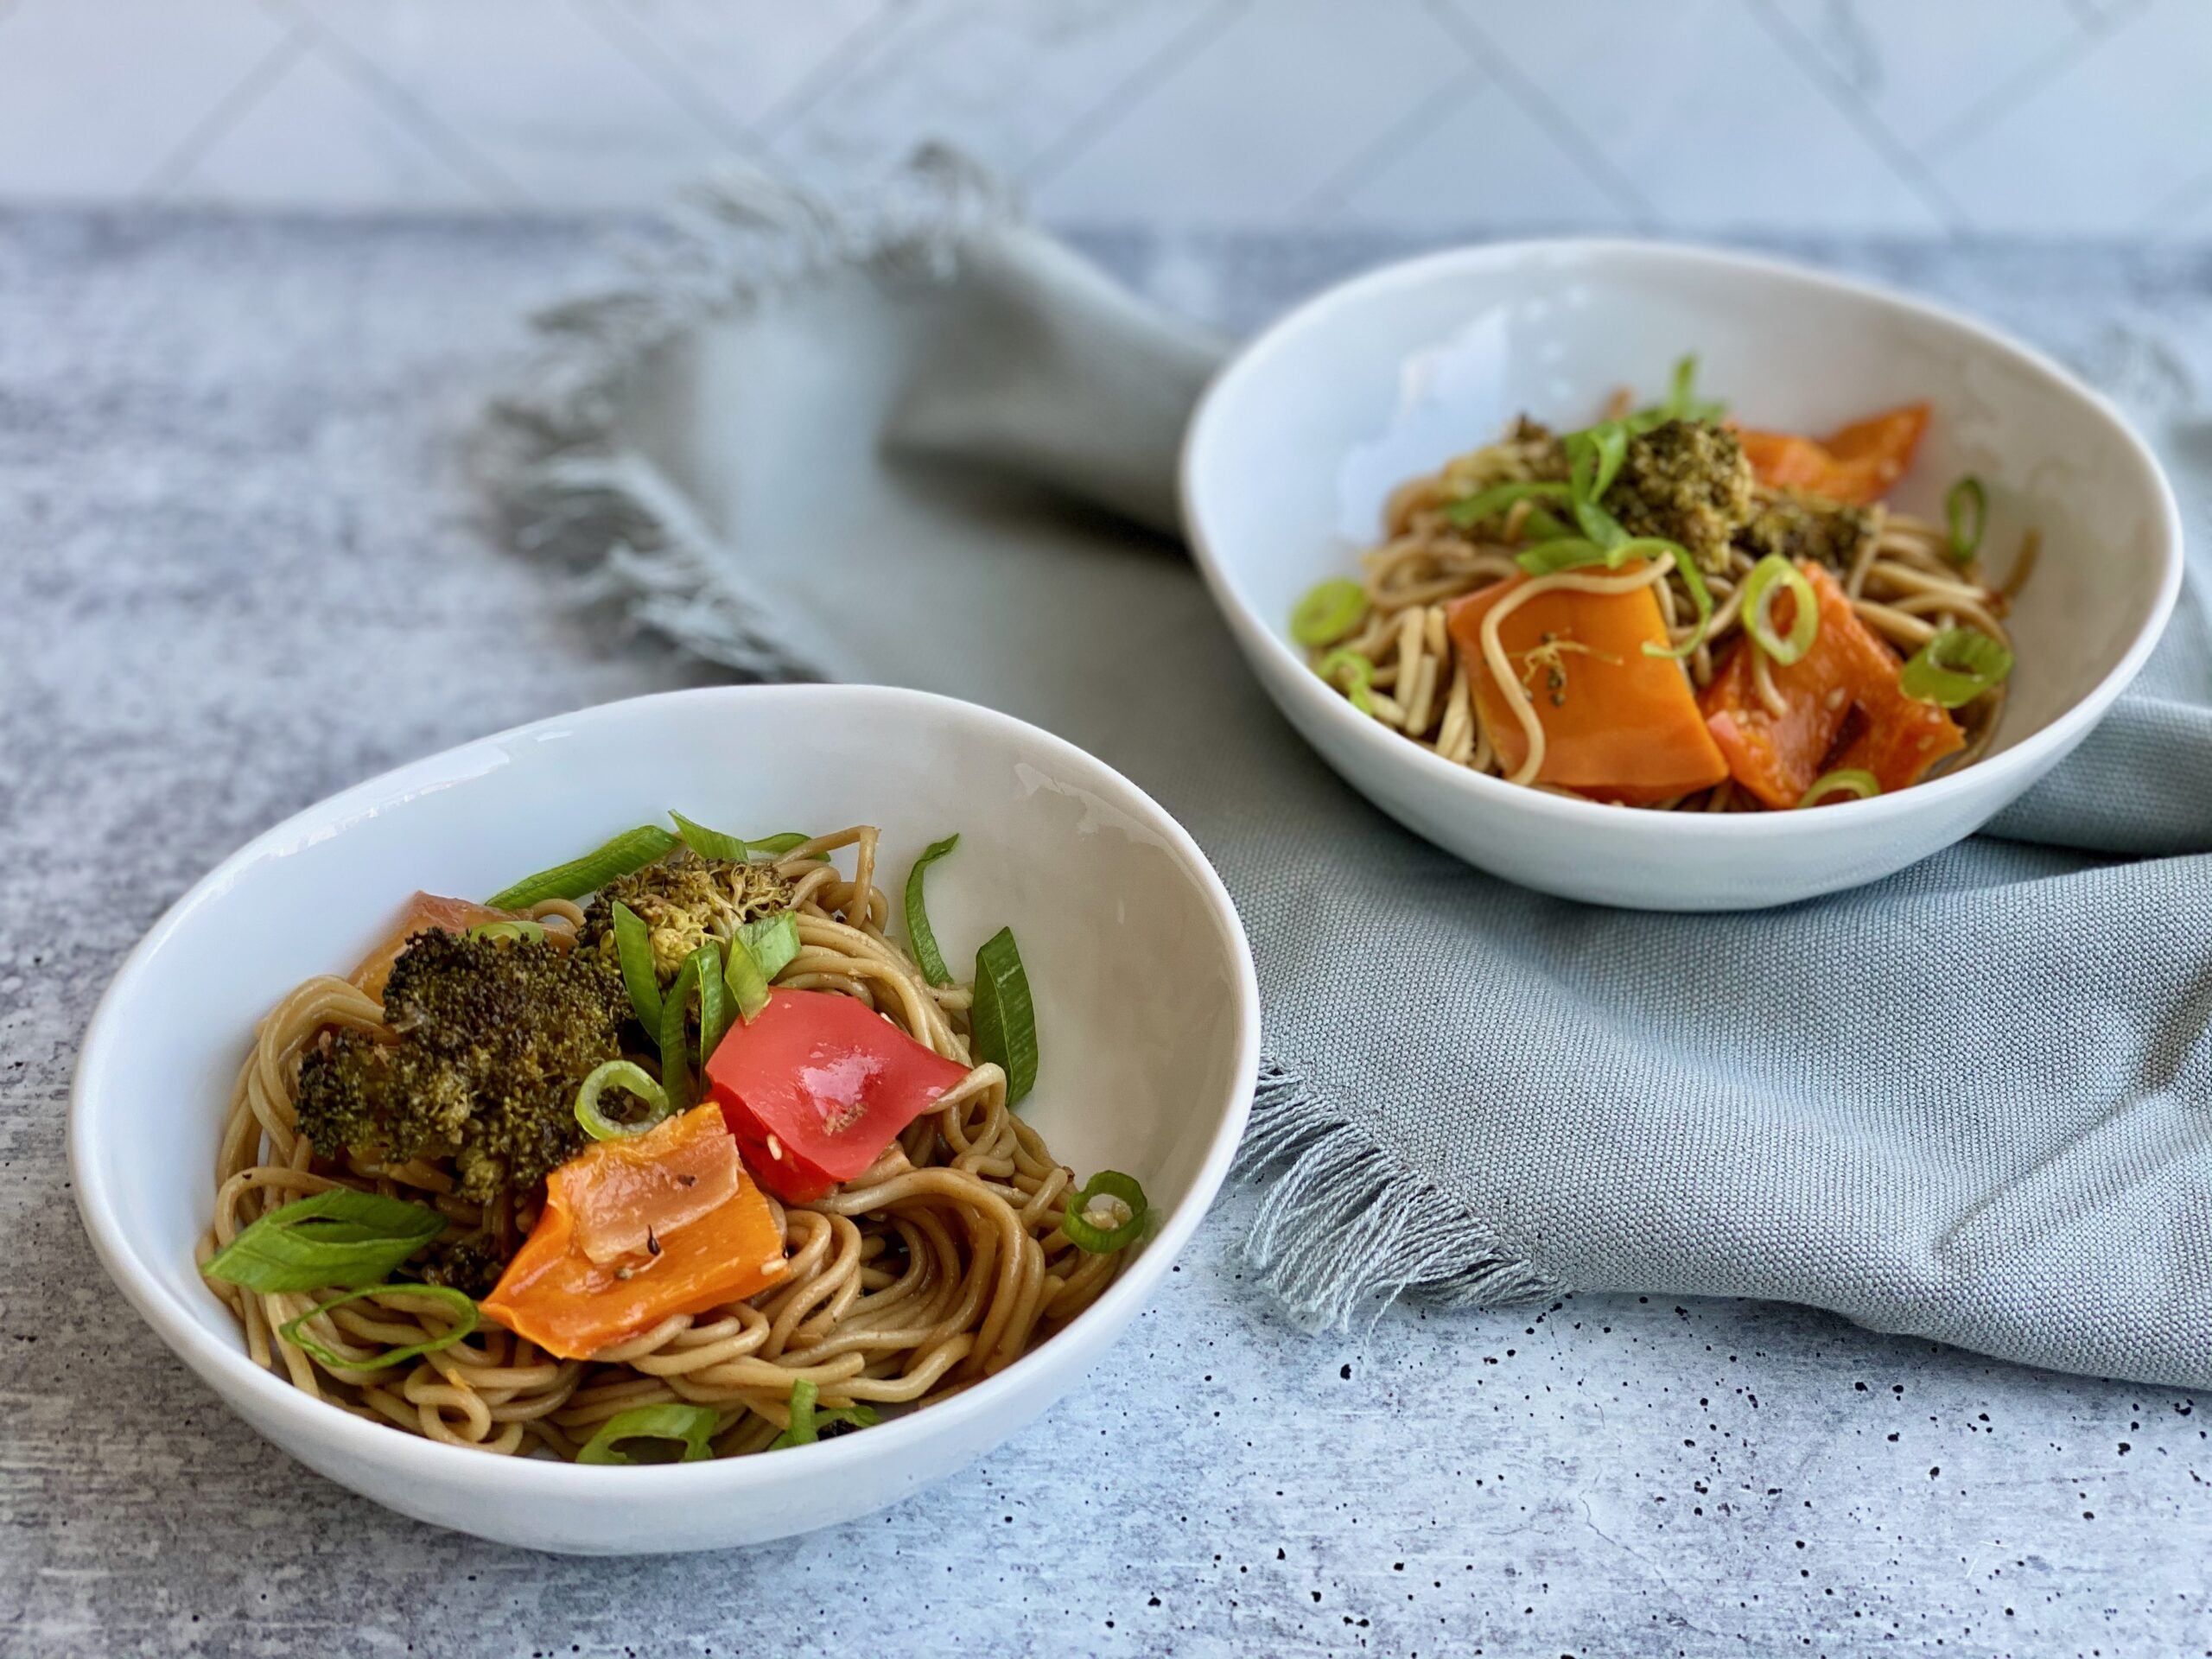 Image of two bowls with ramen noodles and veggies